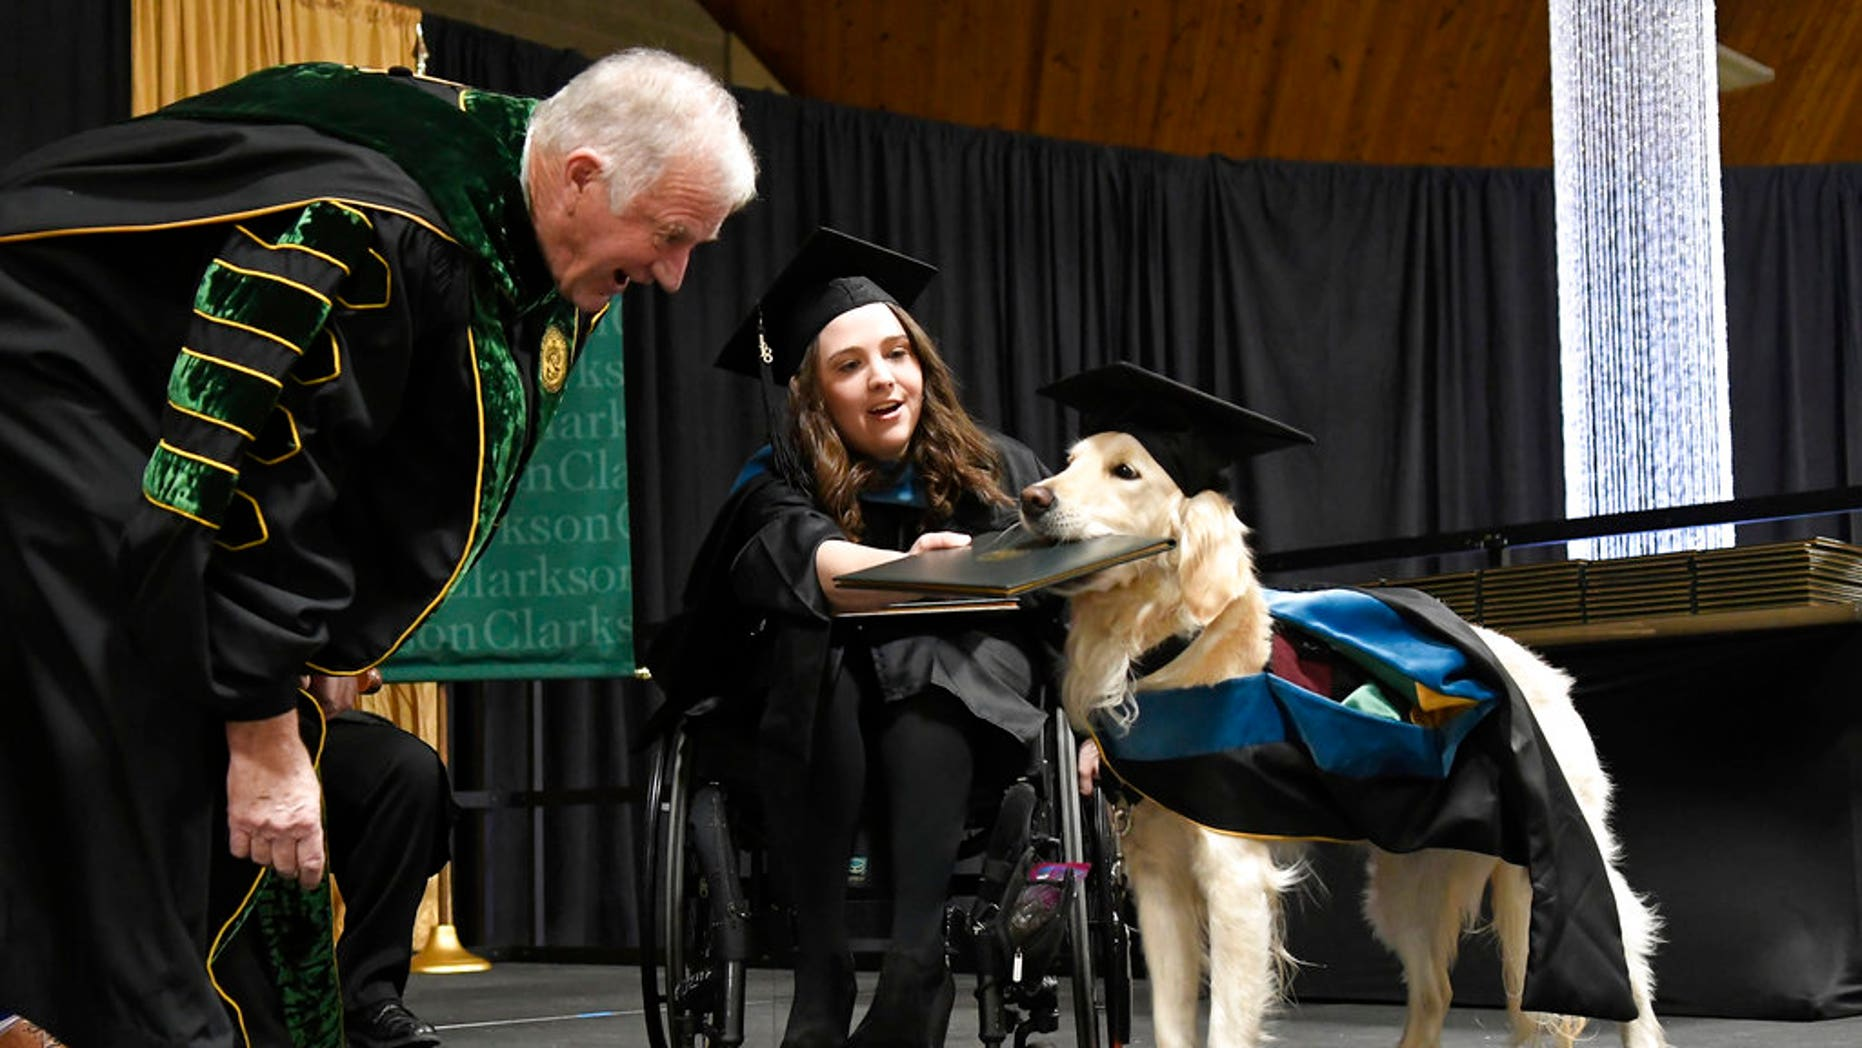 """Griffin,"" a 4-year-old service dog to Brittany Hawley, was presented with an honorary degree Saturday at Clarkson University as his handler received a master's degree in occupational therapy."